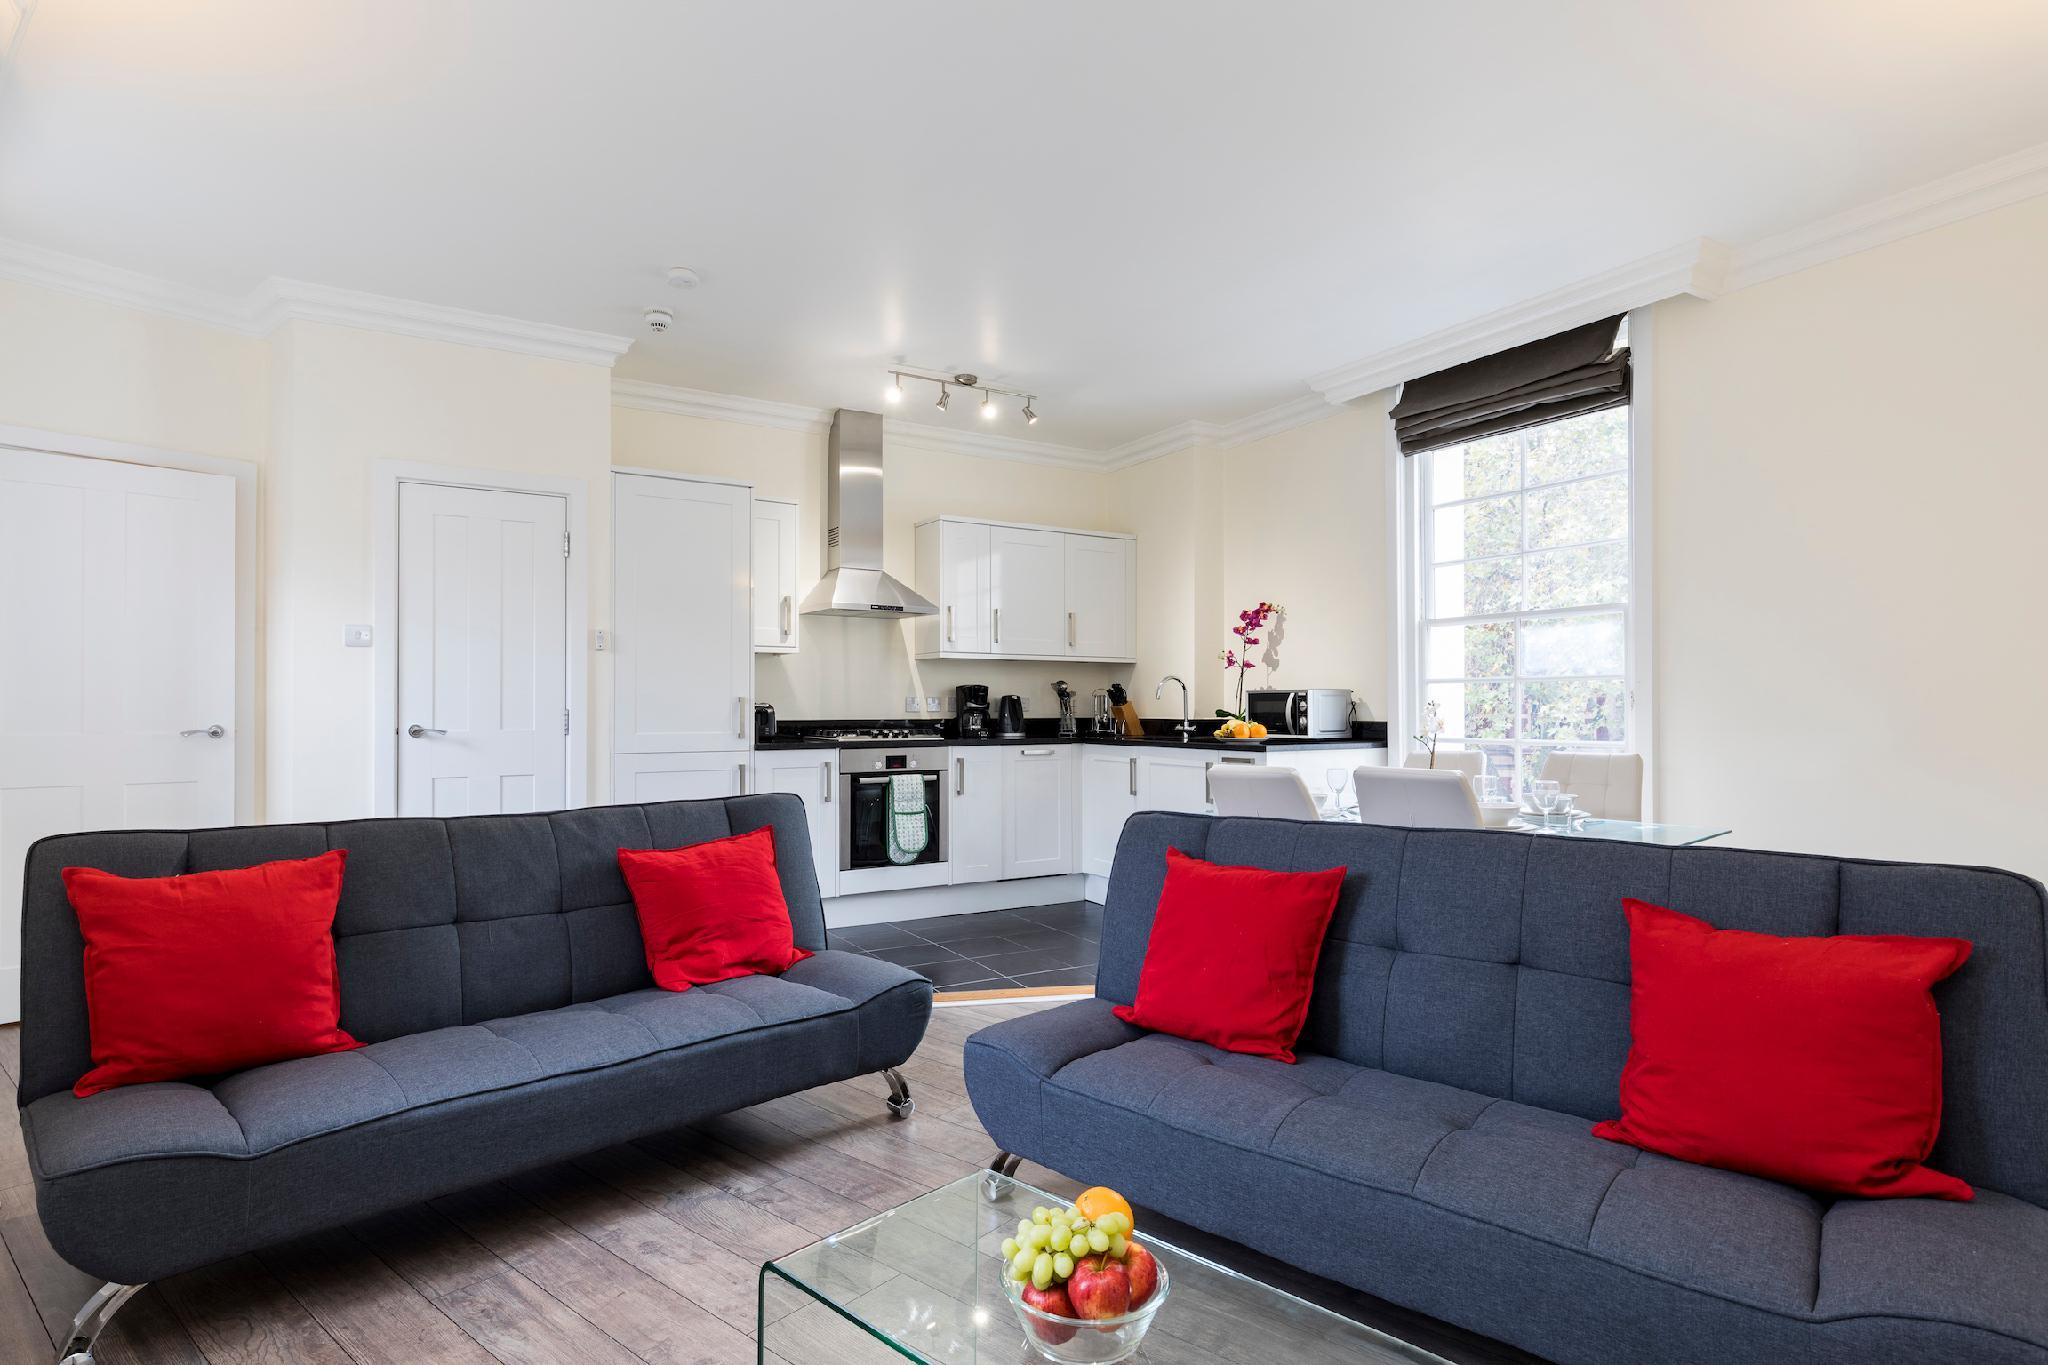 OXFORD STREET LOVELY 1BR IN CENTRE OF LONDON